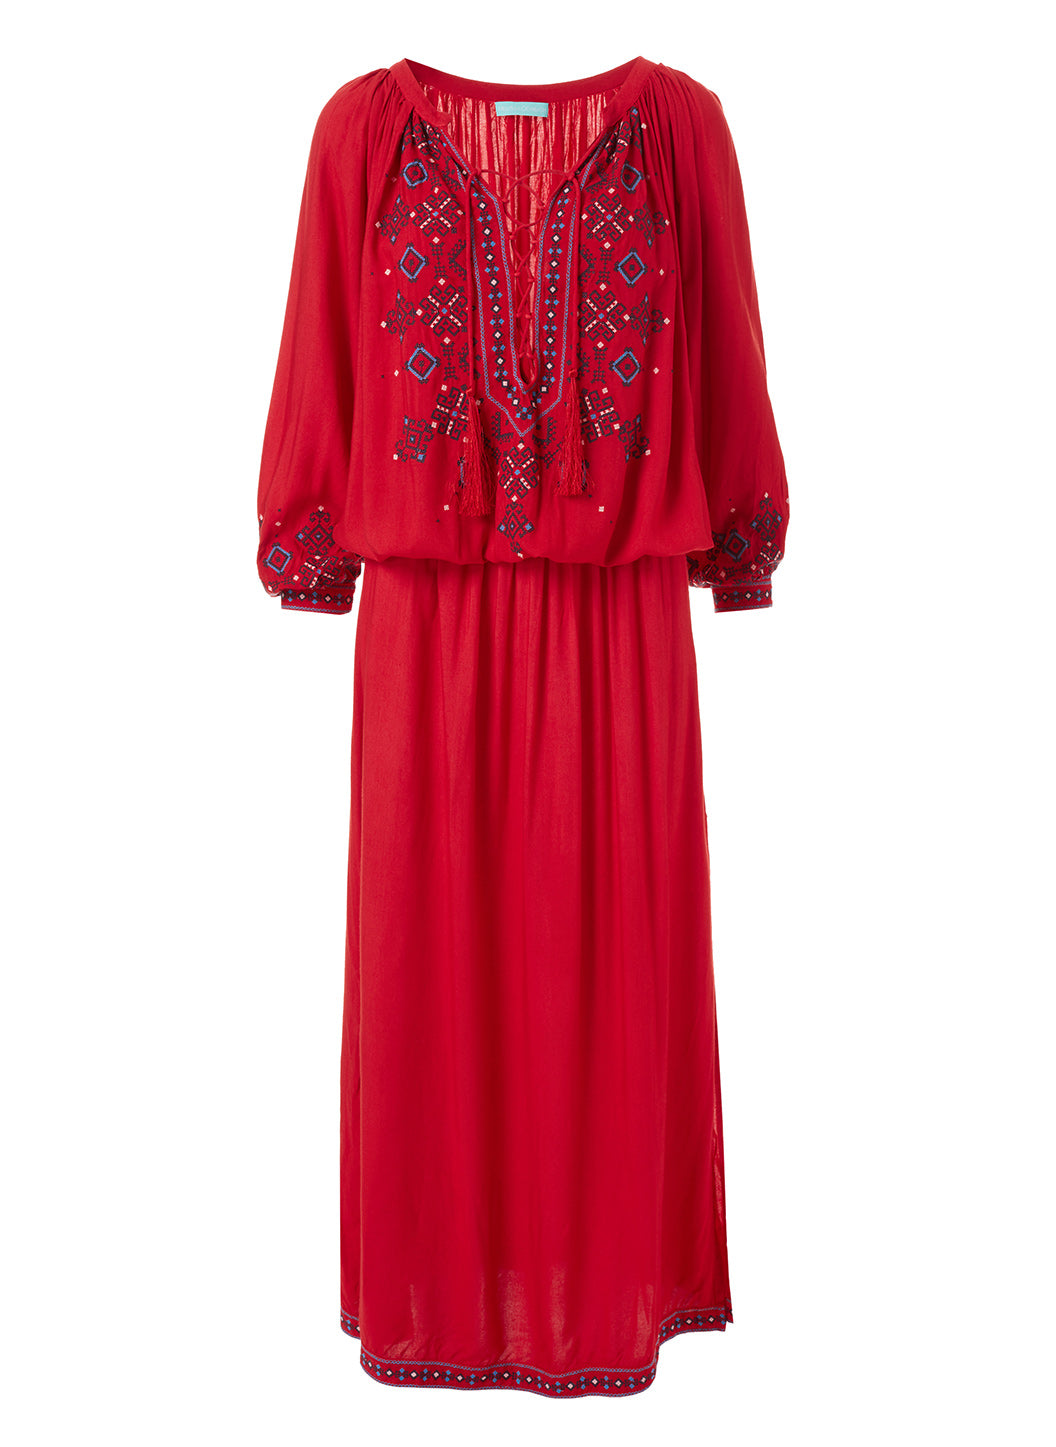 Sienna Red Embroidered 3/4 Sleeve Maxi Dress  - Melissa Odabash Beachwear